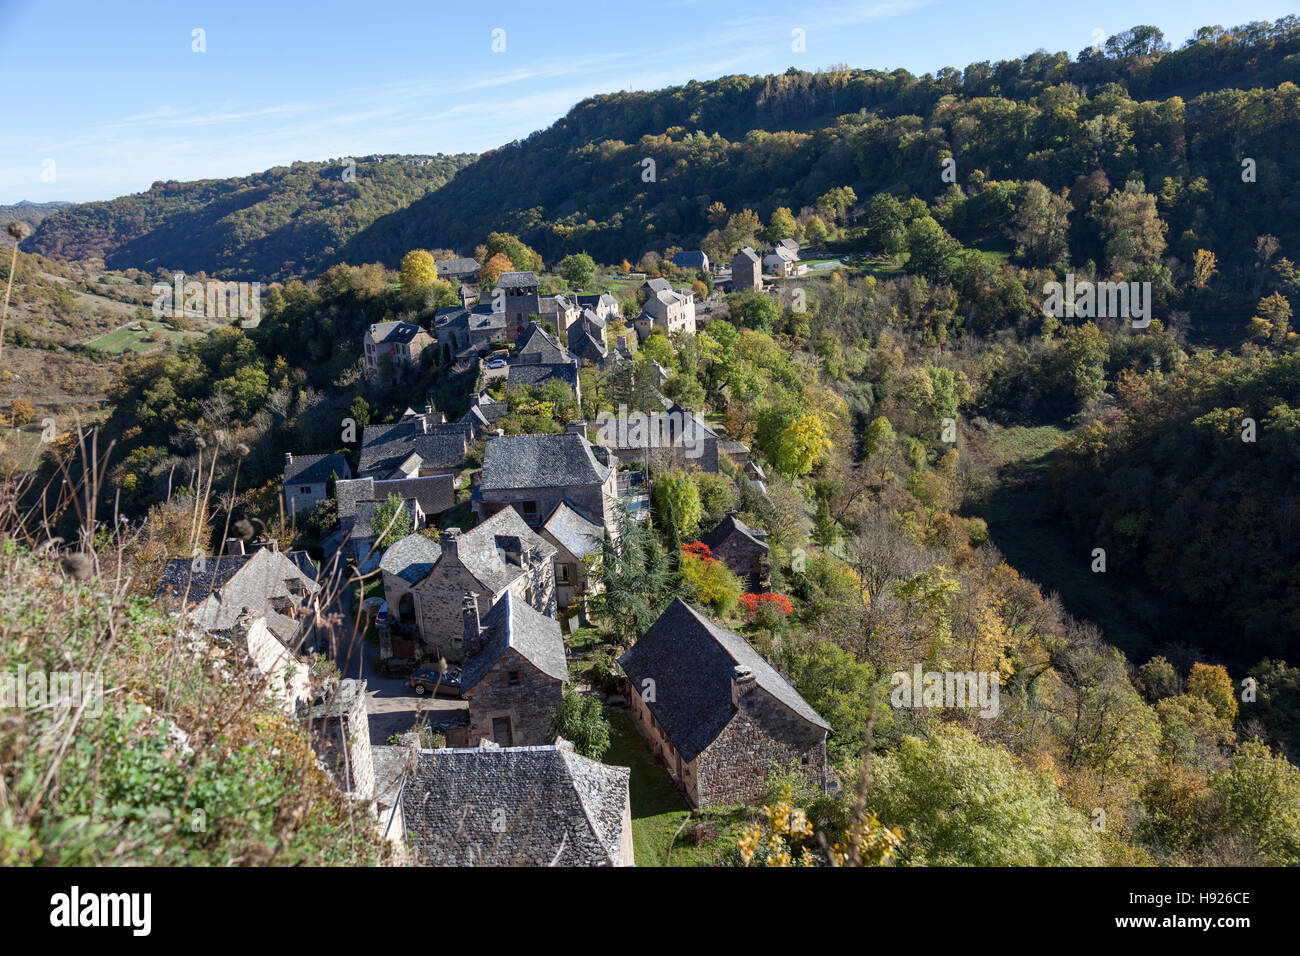 A high angle shot on roofs of the village of Rodelle perched on its rocky outcrop (France). Les toits du village - Stock Image